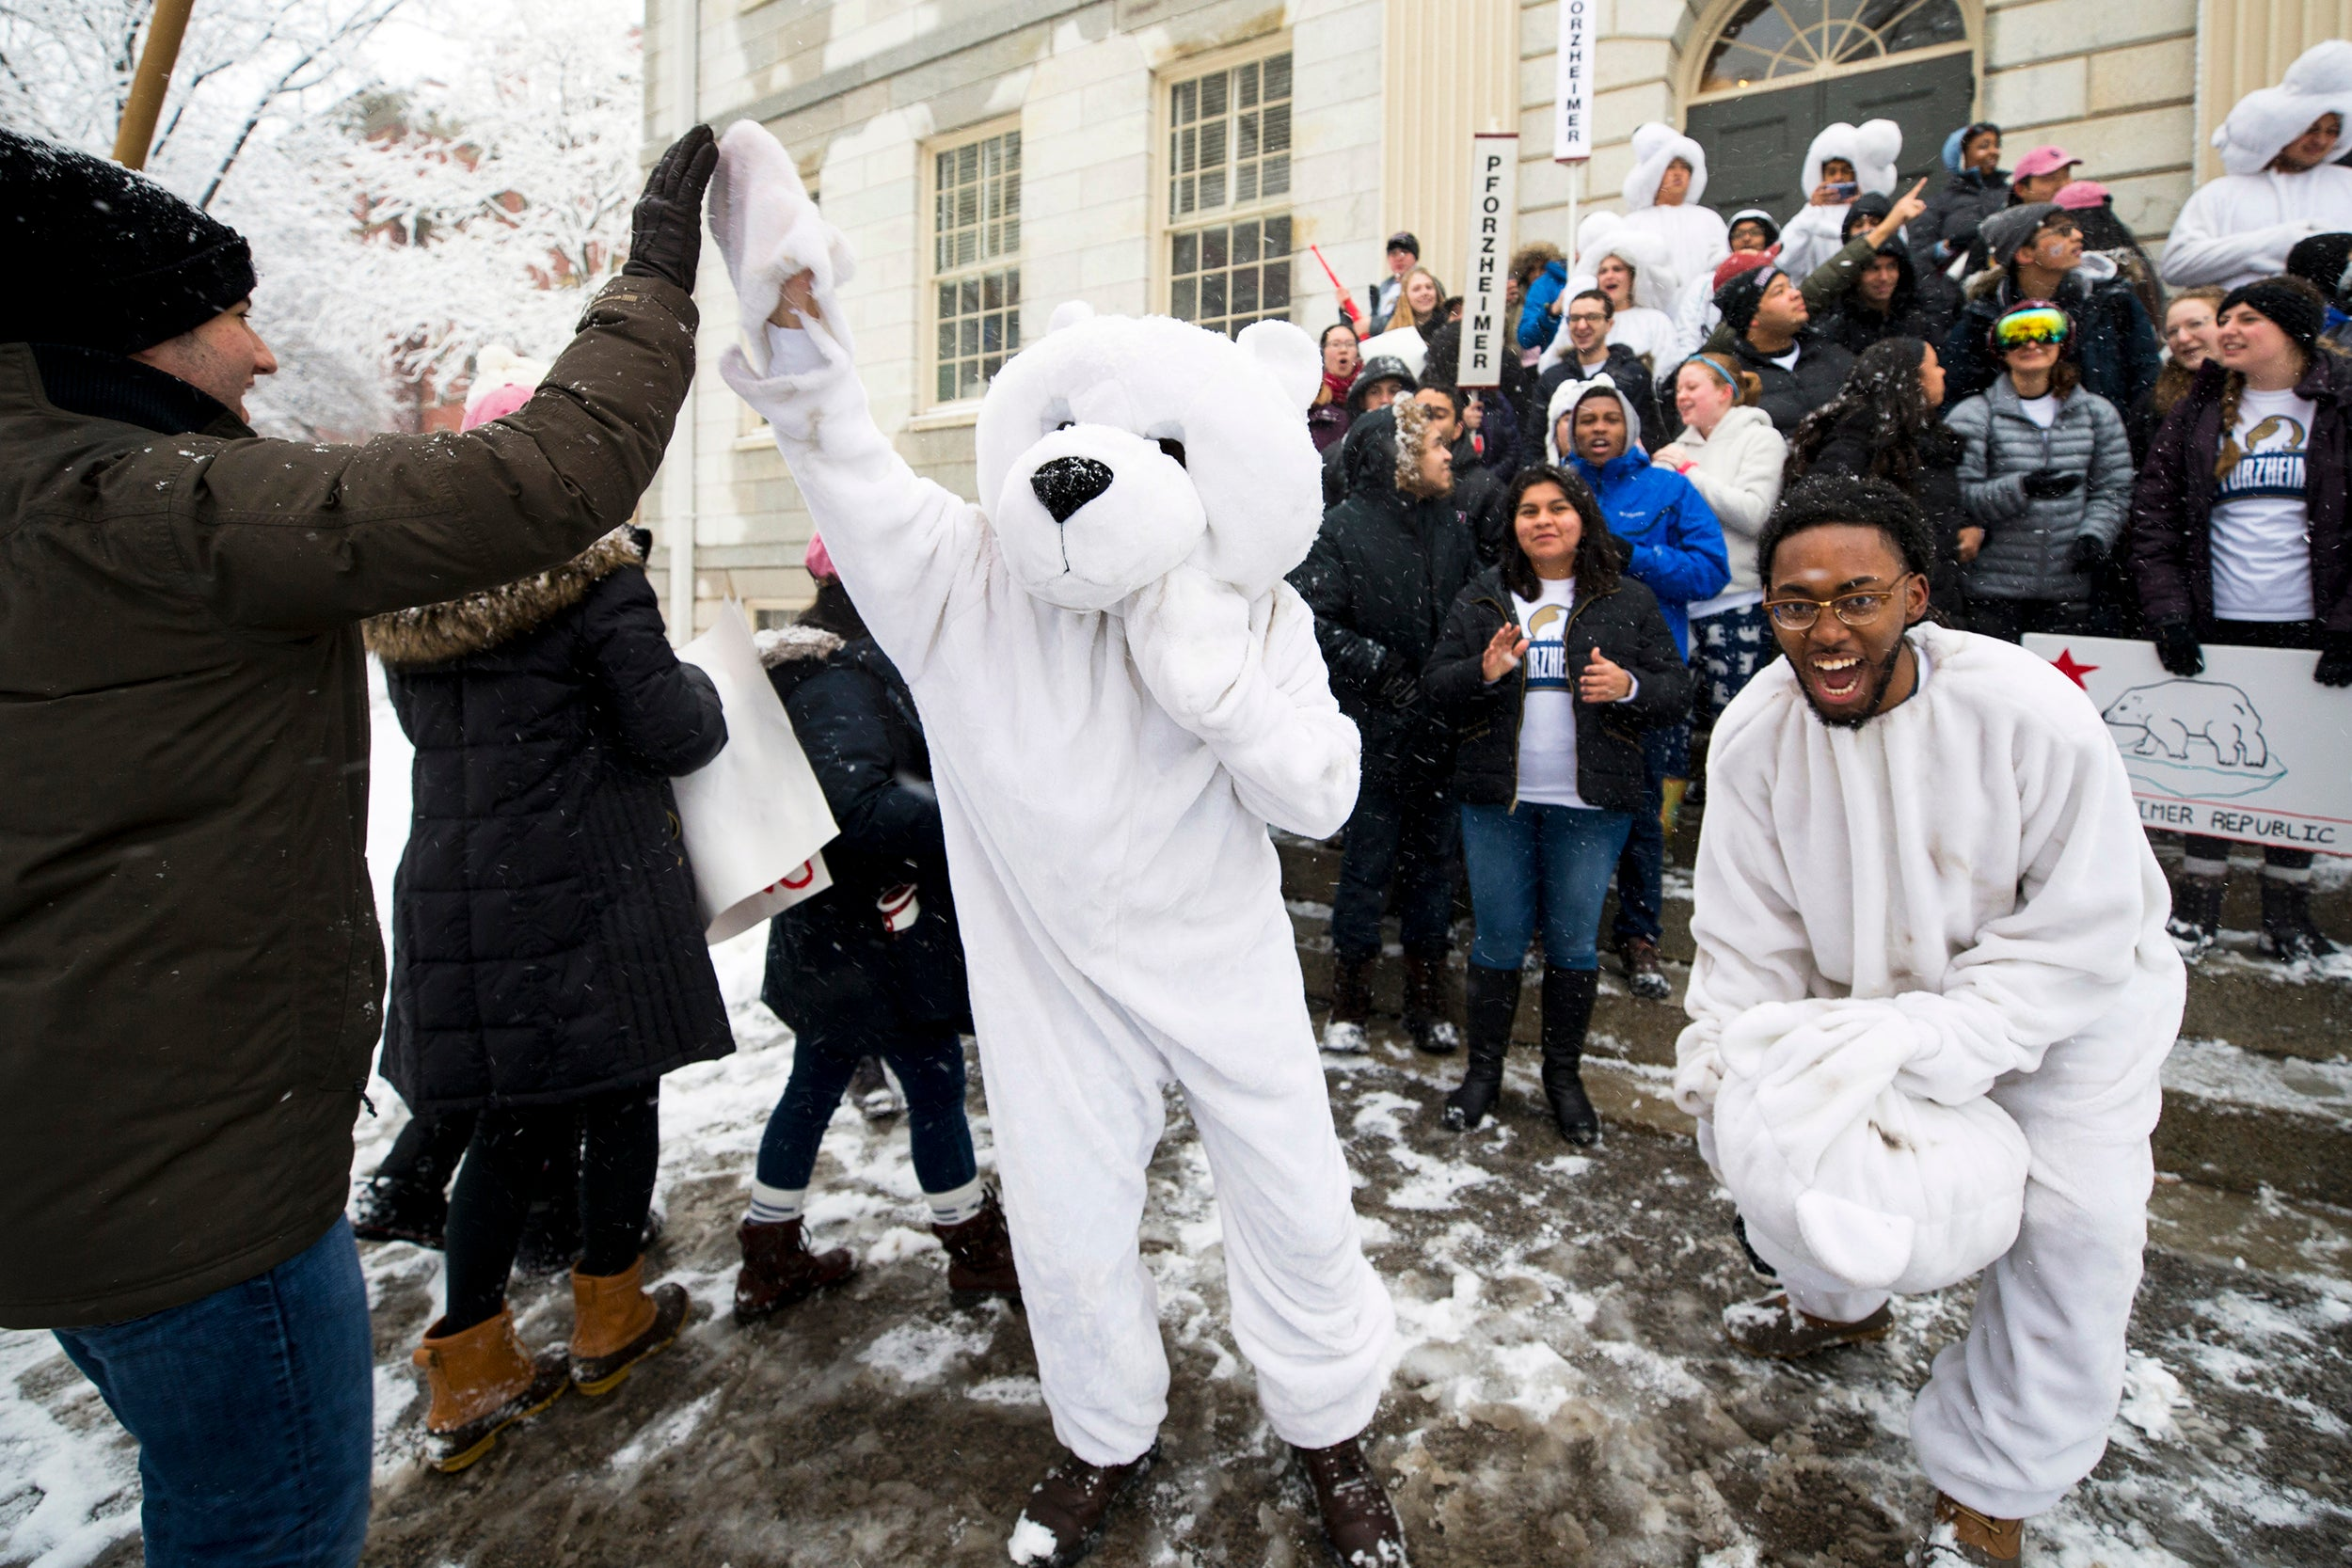 Julius Wade (right) and fellow PfoHo residents celebrate being the second to arrive at the John Harvard statue for the annual delivery of housing assignments.